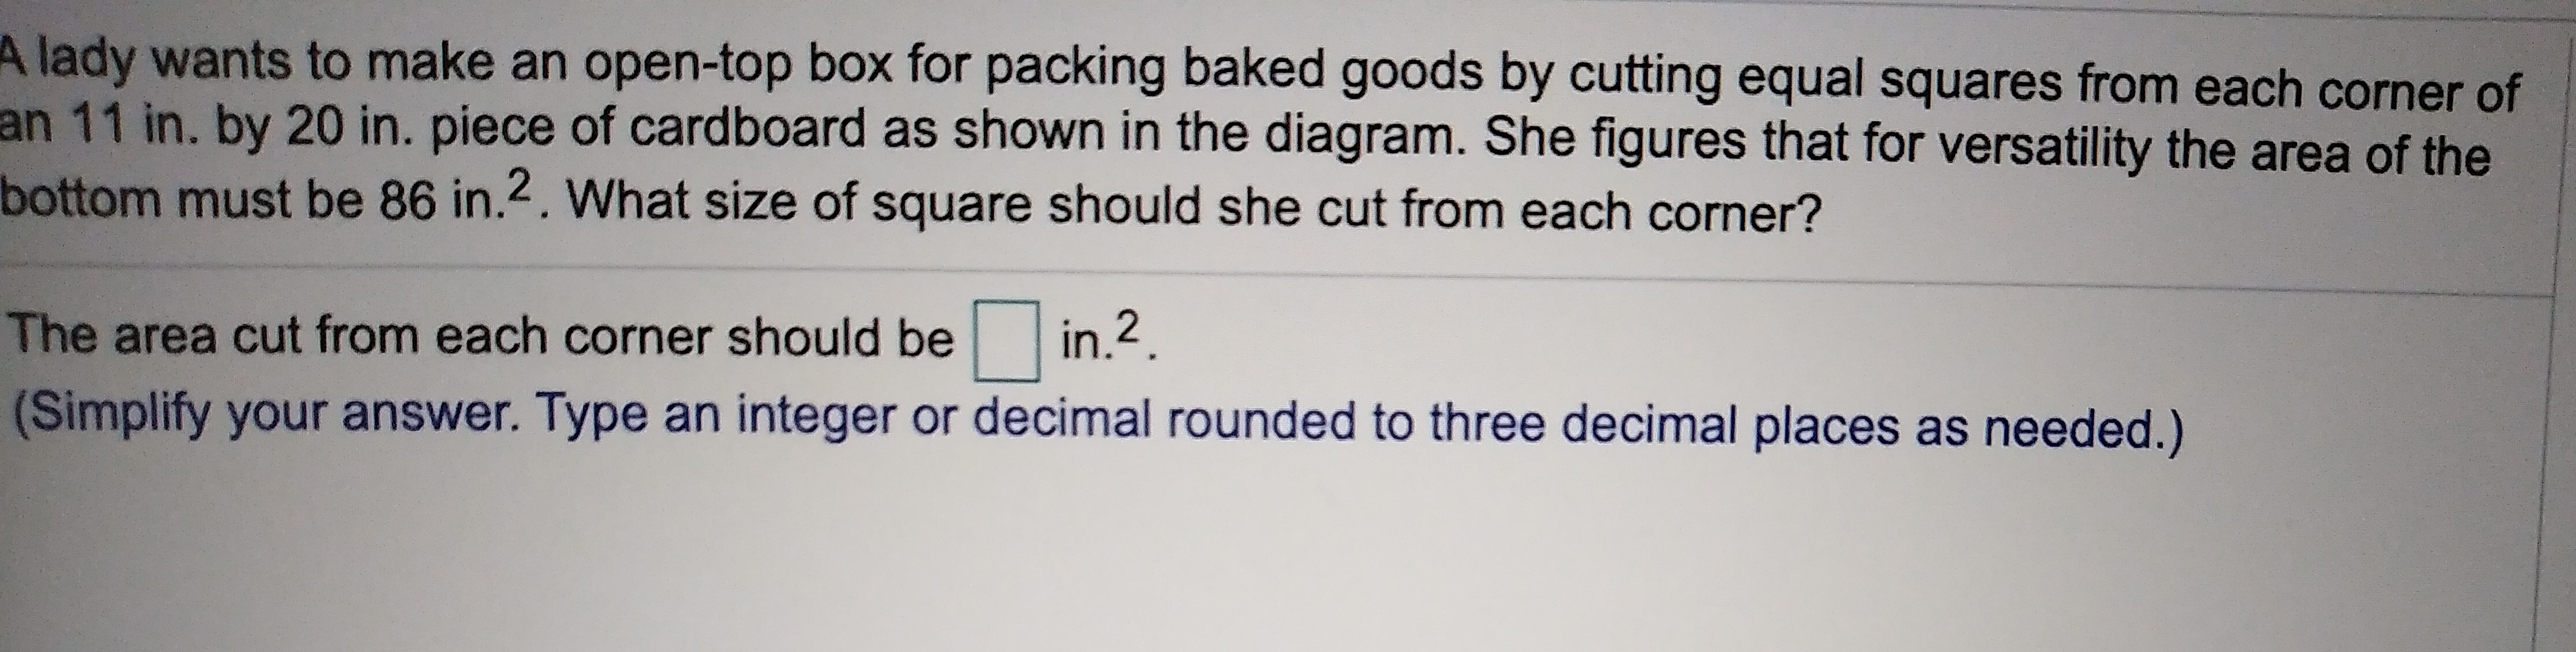 lady wants to make an open-top box for packing baked goods by cutting equal squares from each corner of an 11 in. by 20 in. piece of cardboard as shown in the diagram. She figures that for versatility the area of the bottom must be 86 in.2. What size of square should she cut from each corner? in.2 The area cut from each corner should be (Simplify your answer. Type an integer or decimal rounded to three decimal places as needed.)